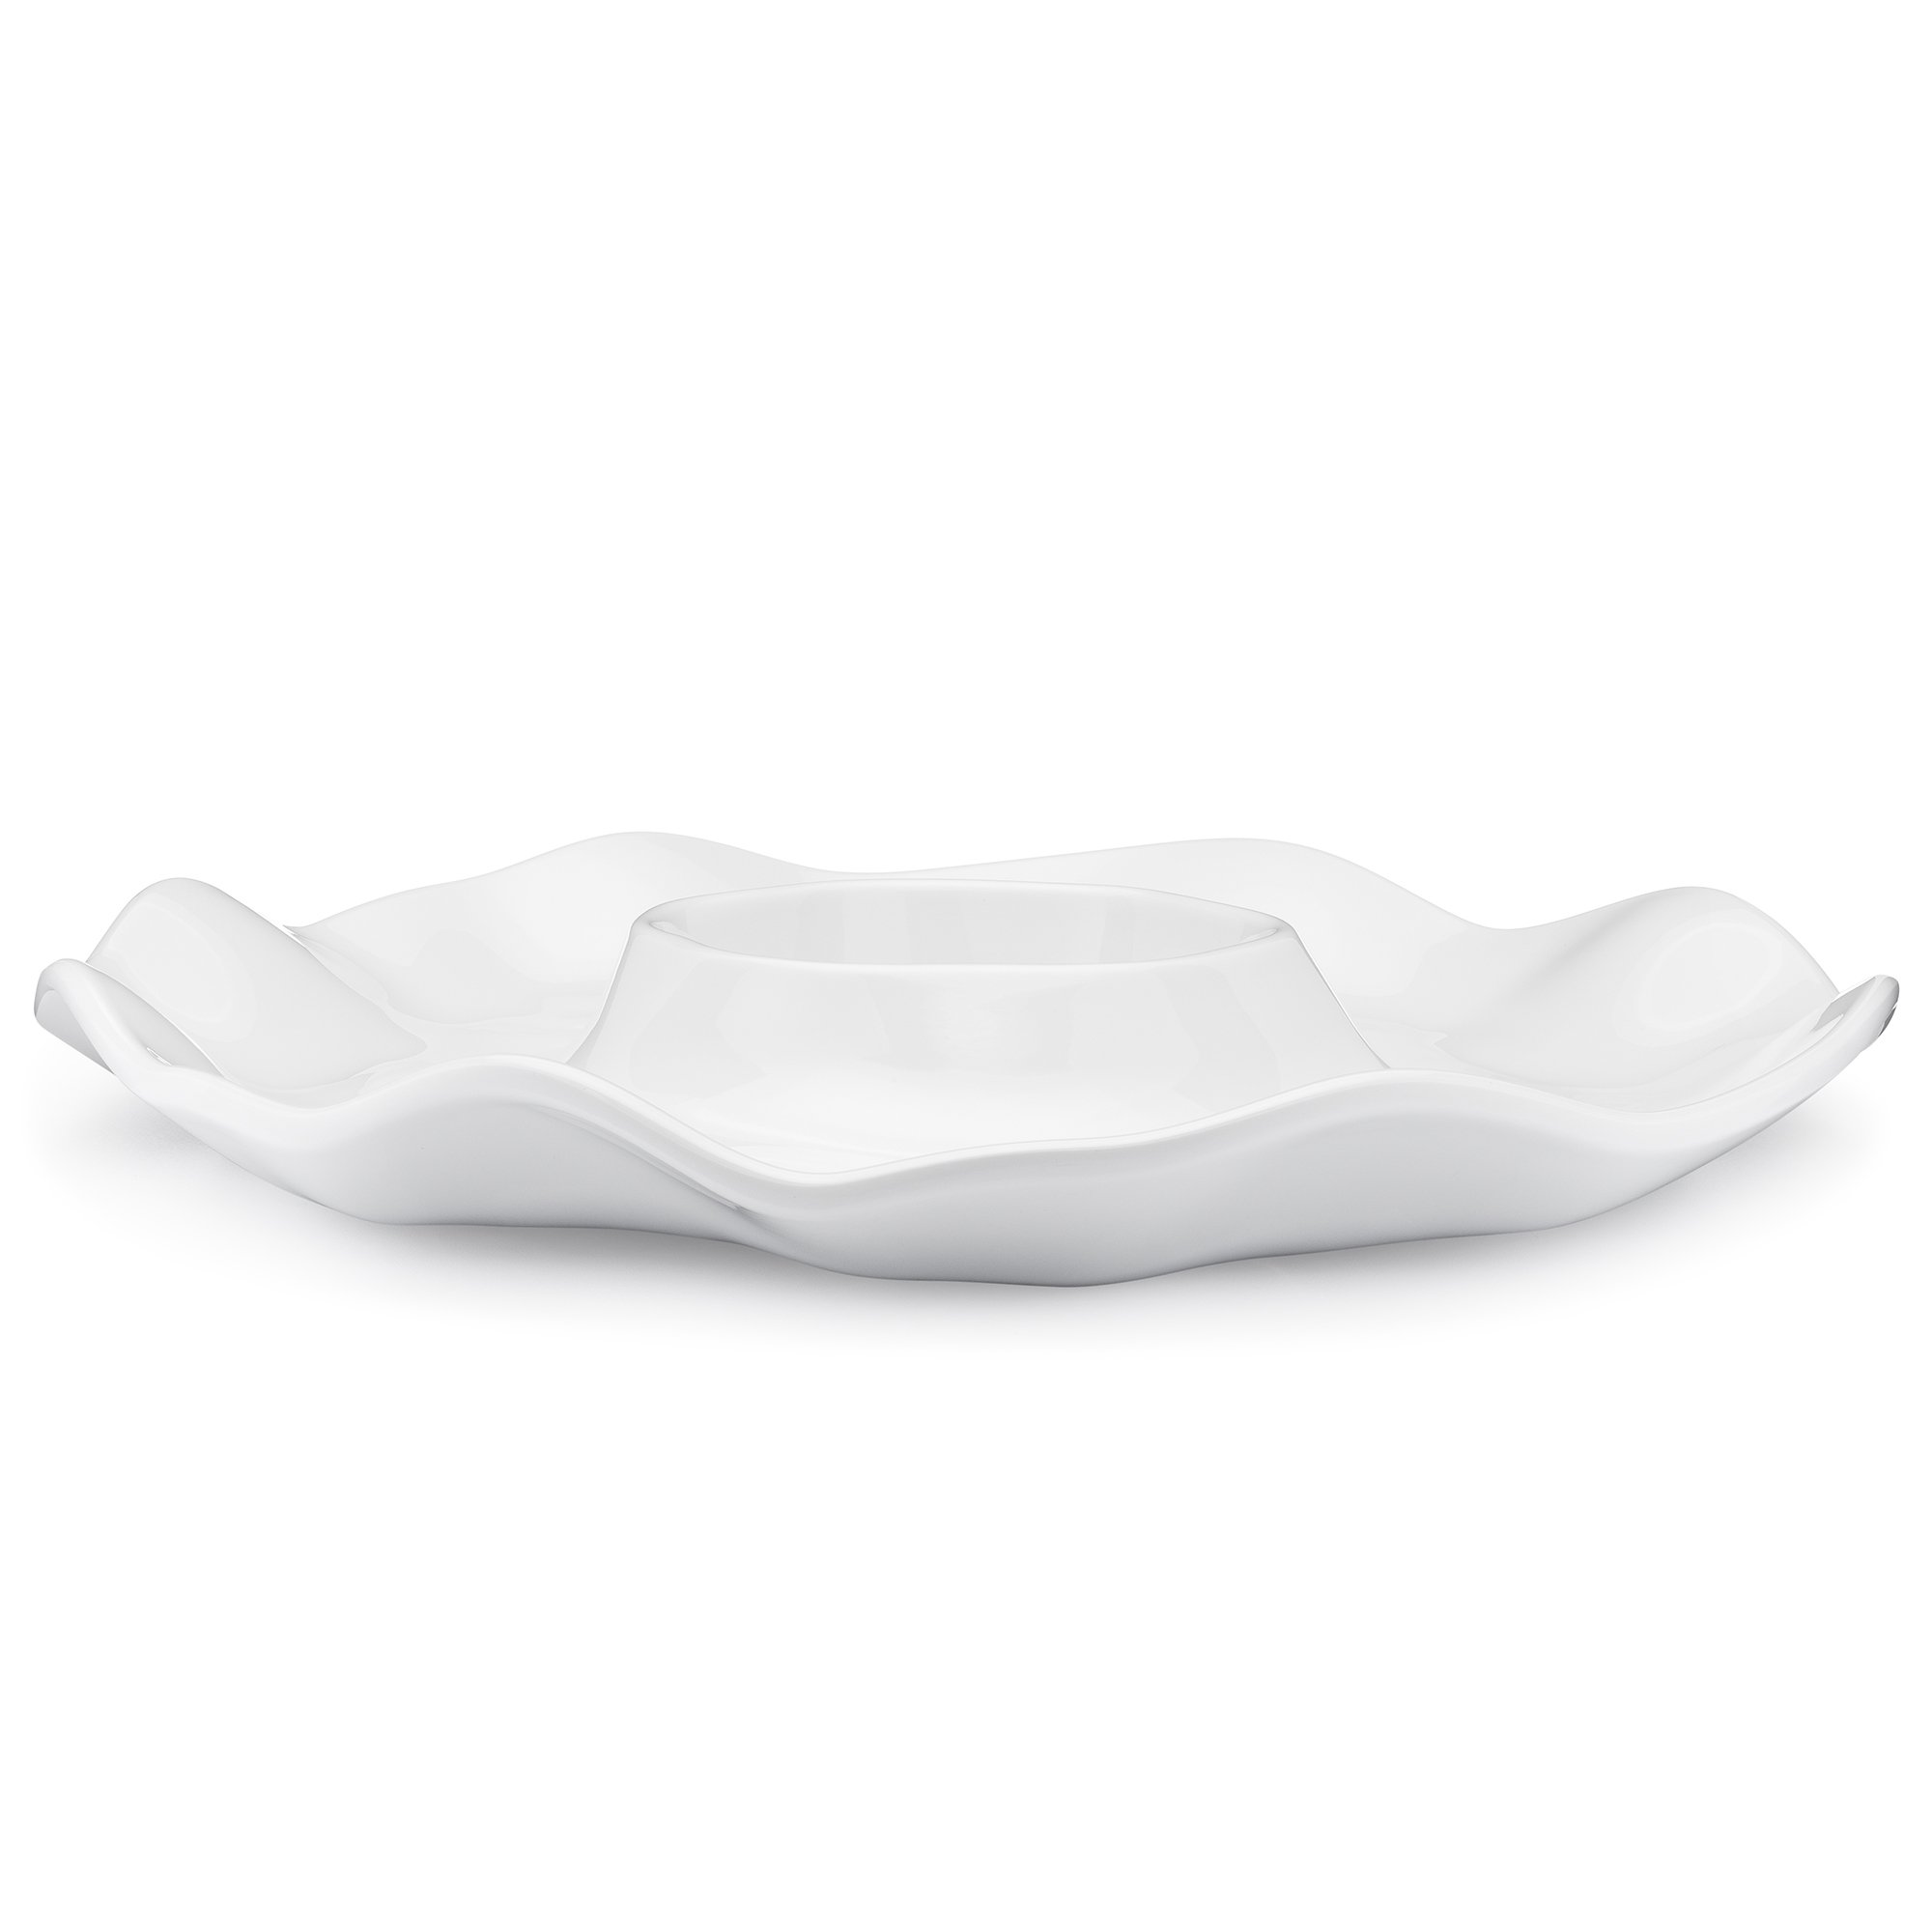 Q Squared Ruffle BPA-Free Melamine Chip & Dip Platter, 16-Inches, Luxe White